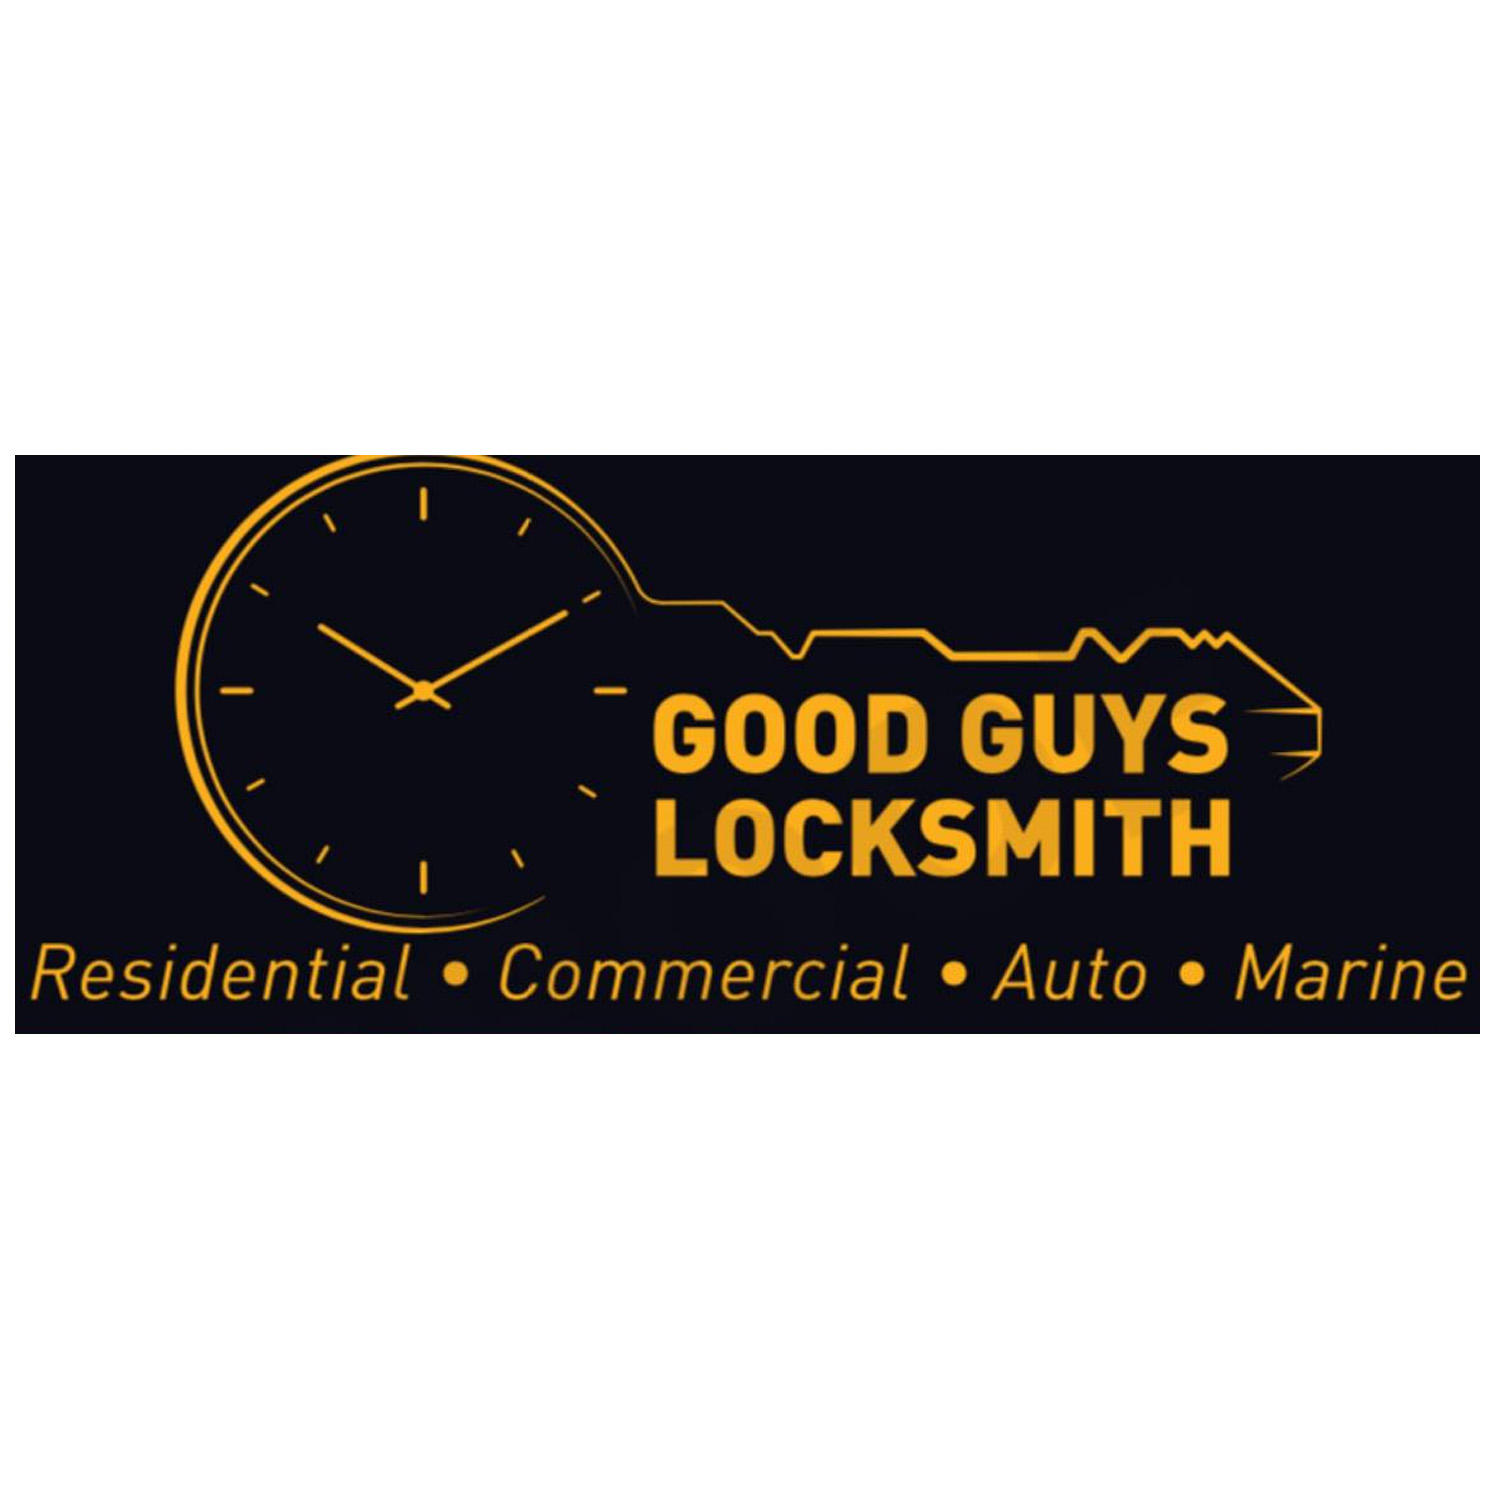 Good guys locksmith in fort lauderdale fl 33315 for 2445 sw 18th terrace